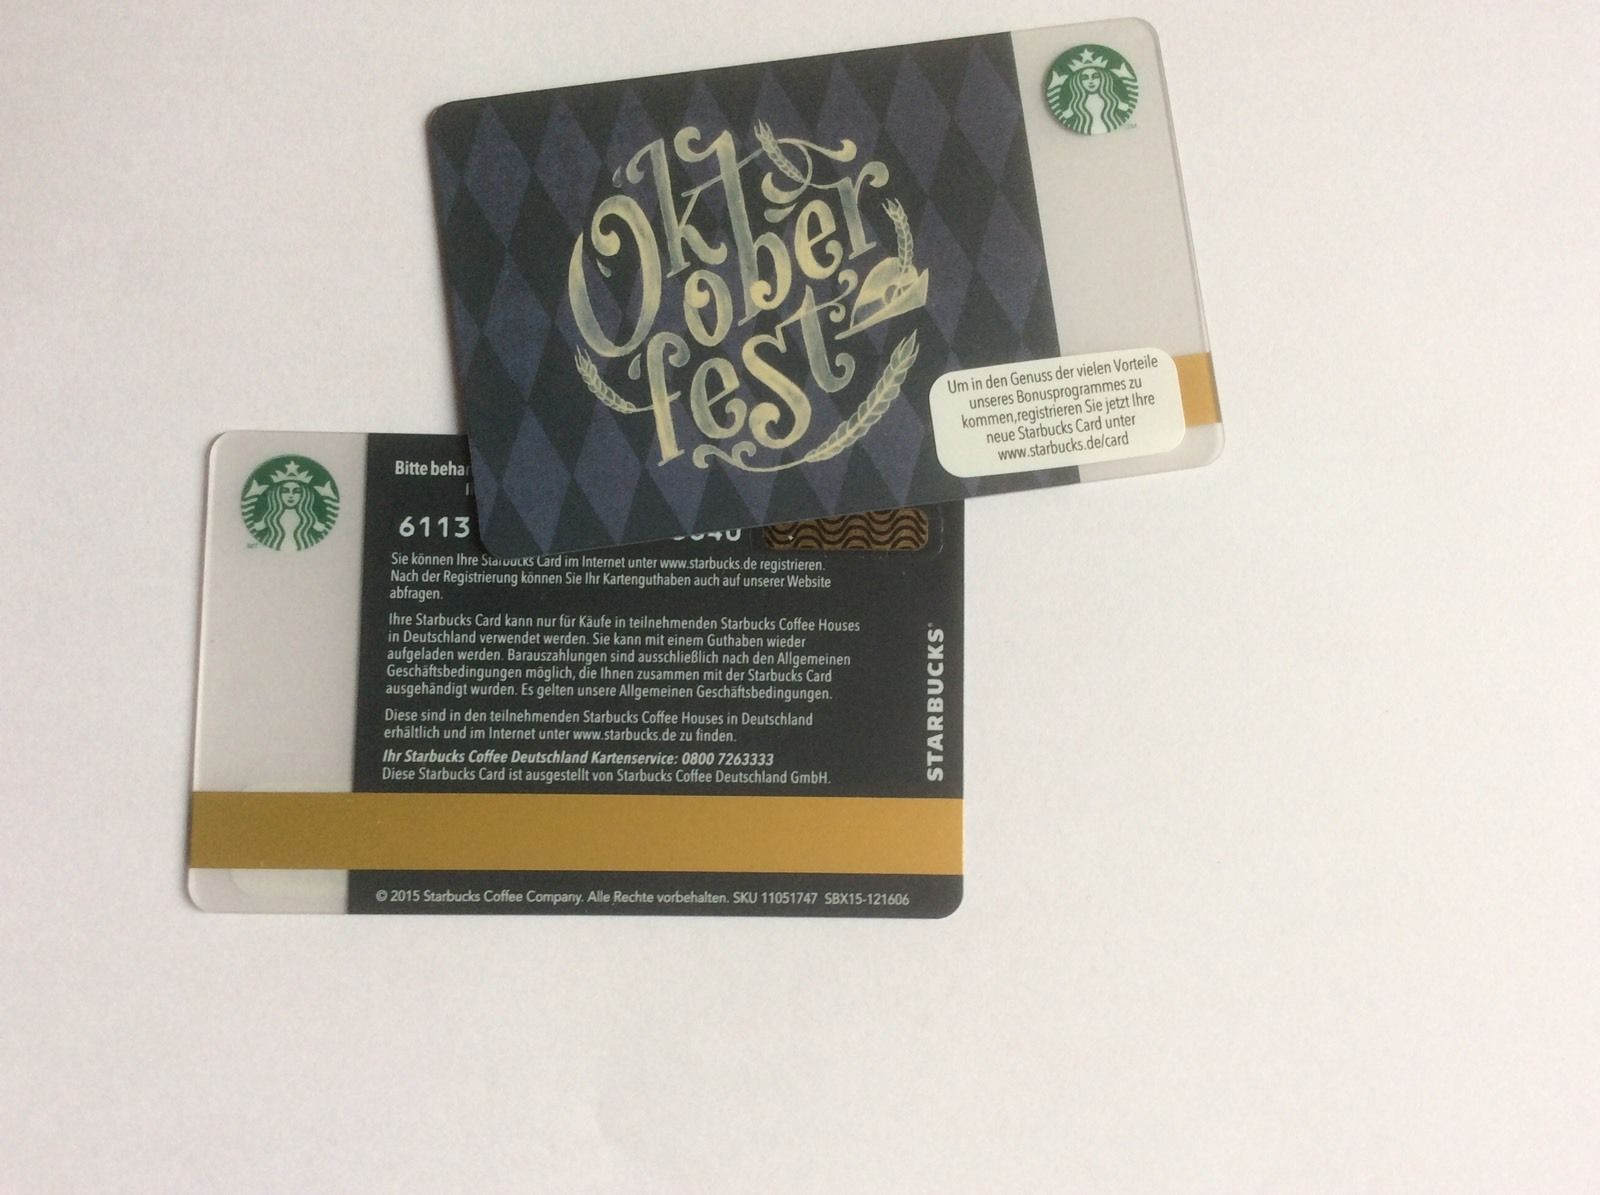 Details About Starbucks Card Germany 6113 Oktoberfest 1st Card Issued To Celebrate An Event Starbucks Gift Card Cards Starbucks